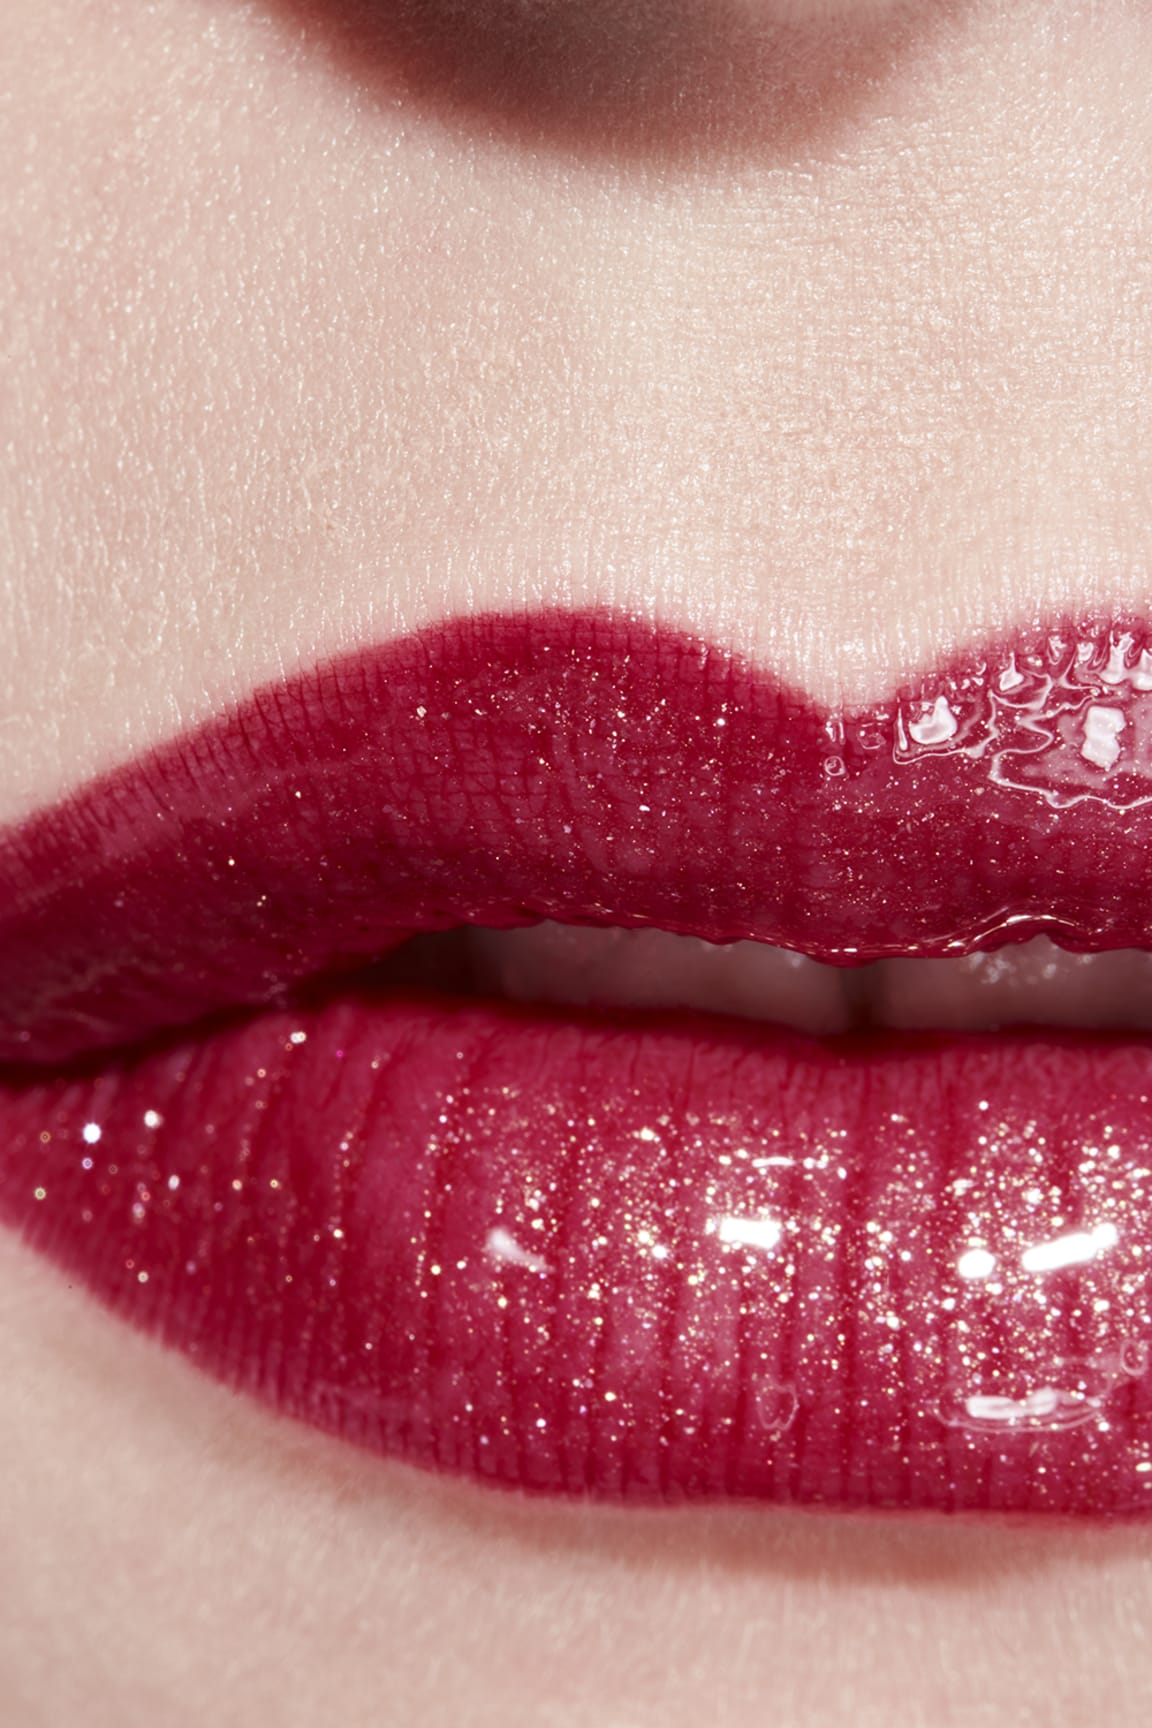 Application makeup visual 3 - ROUGE COCO GLOSS 774 - EXCITATION